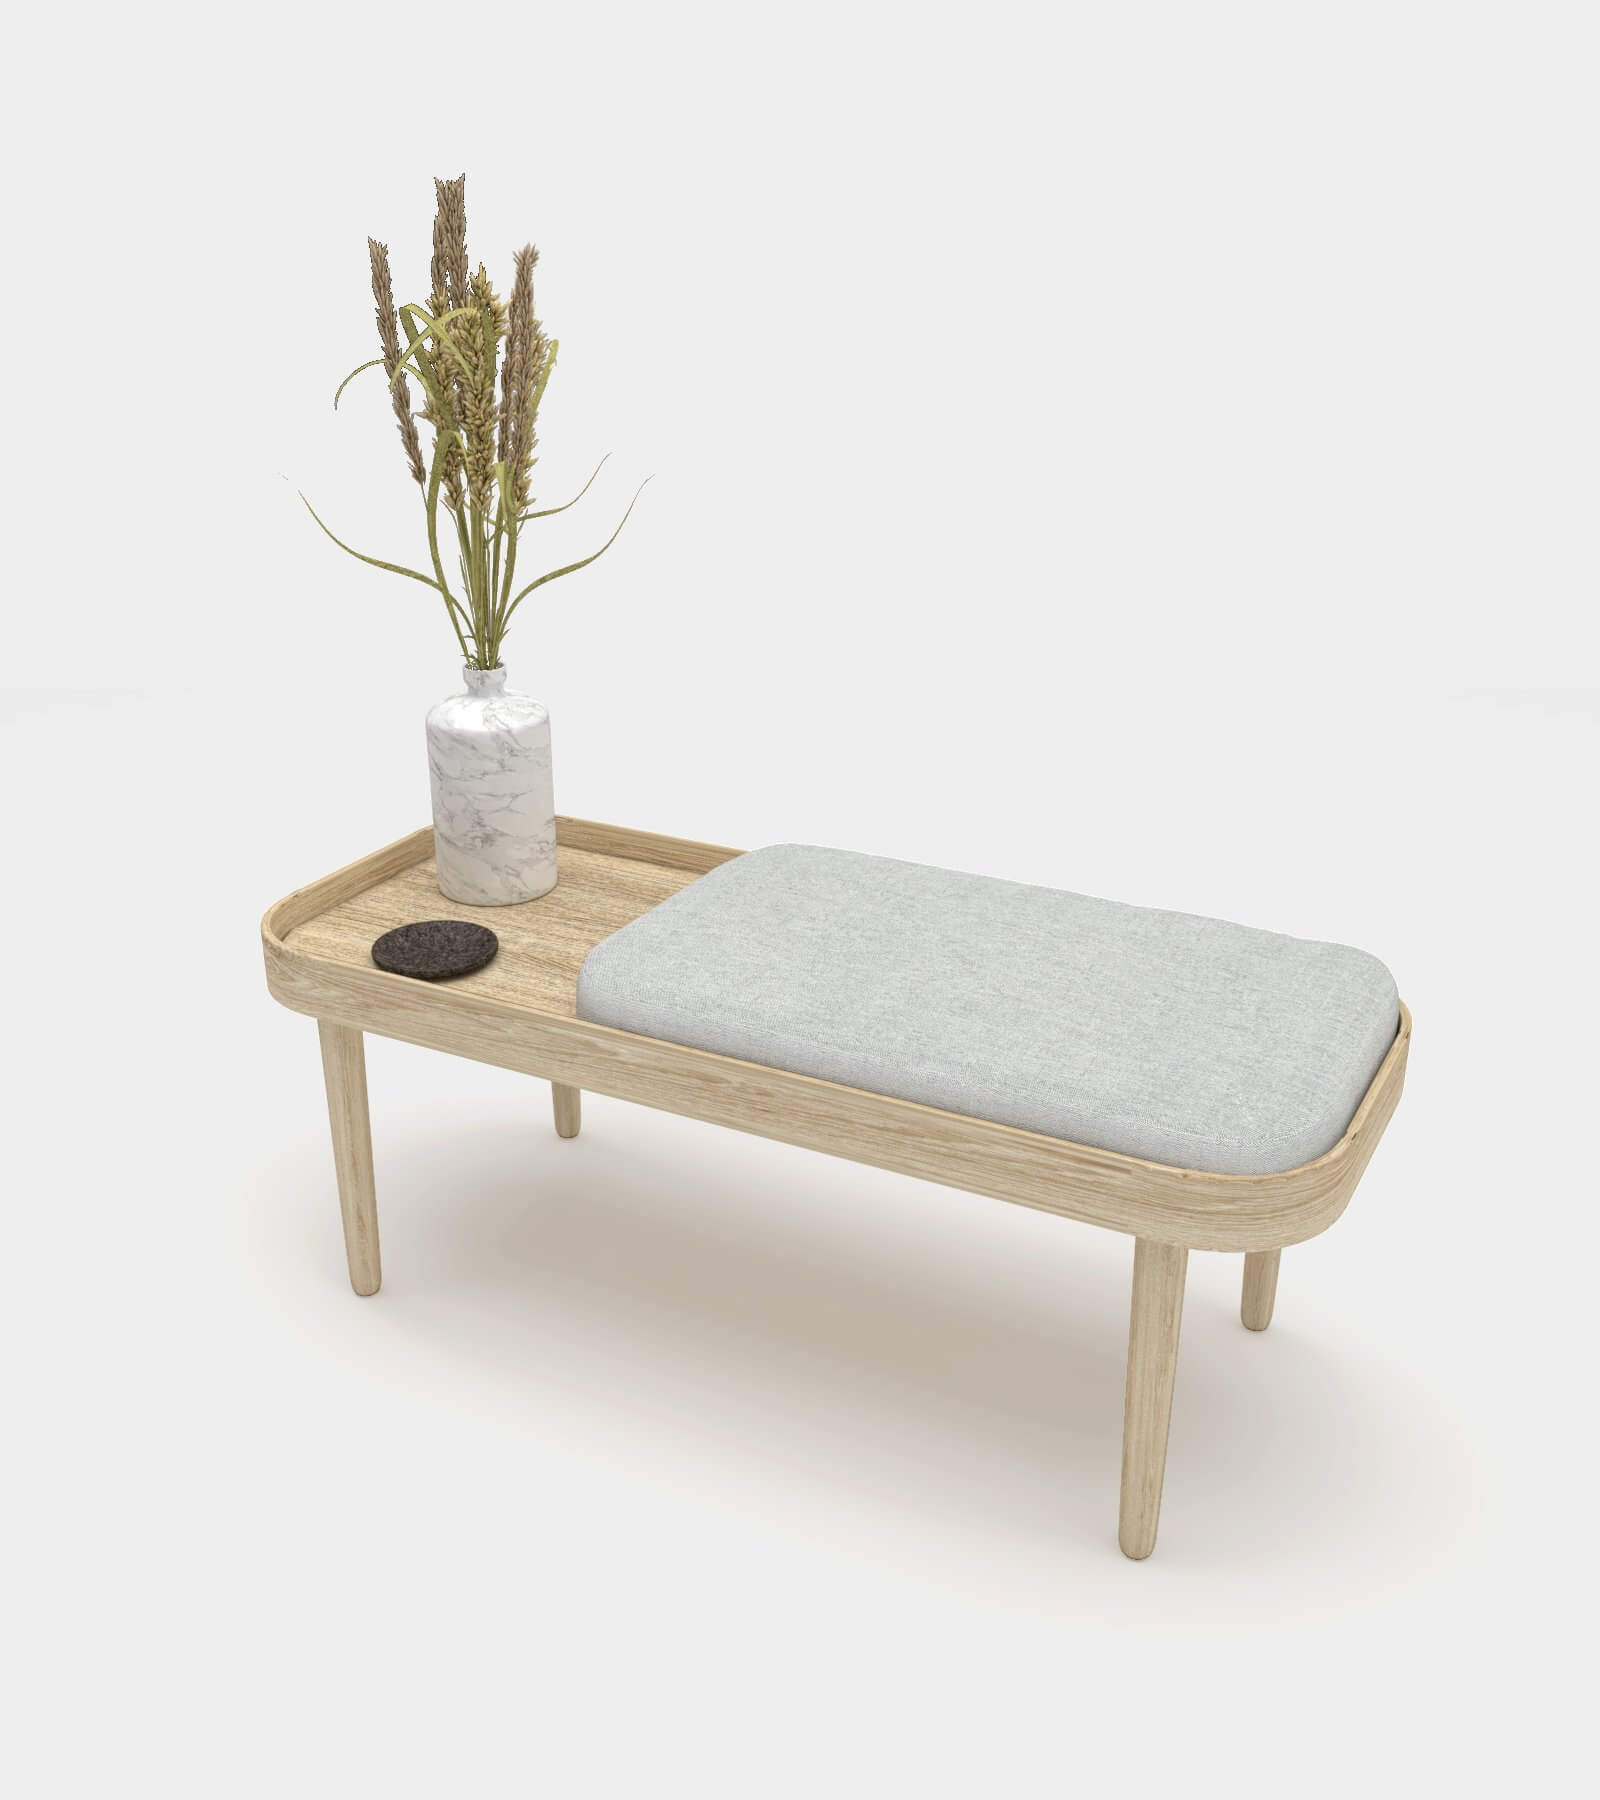 Wooden bench with accessories-2 3D Model